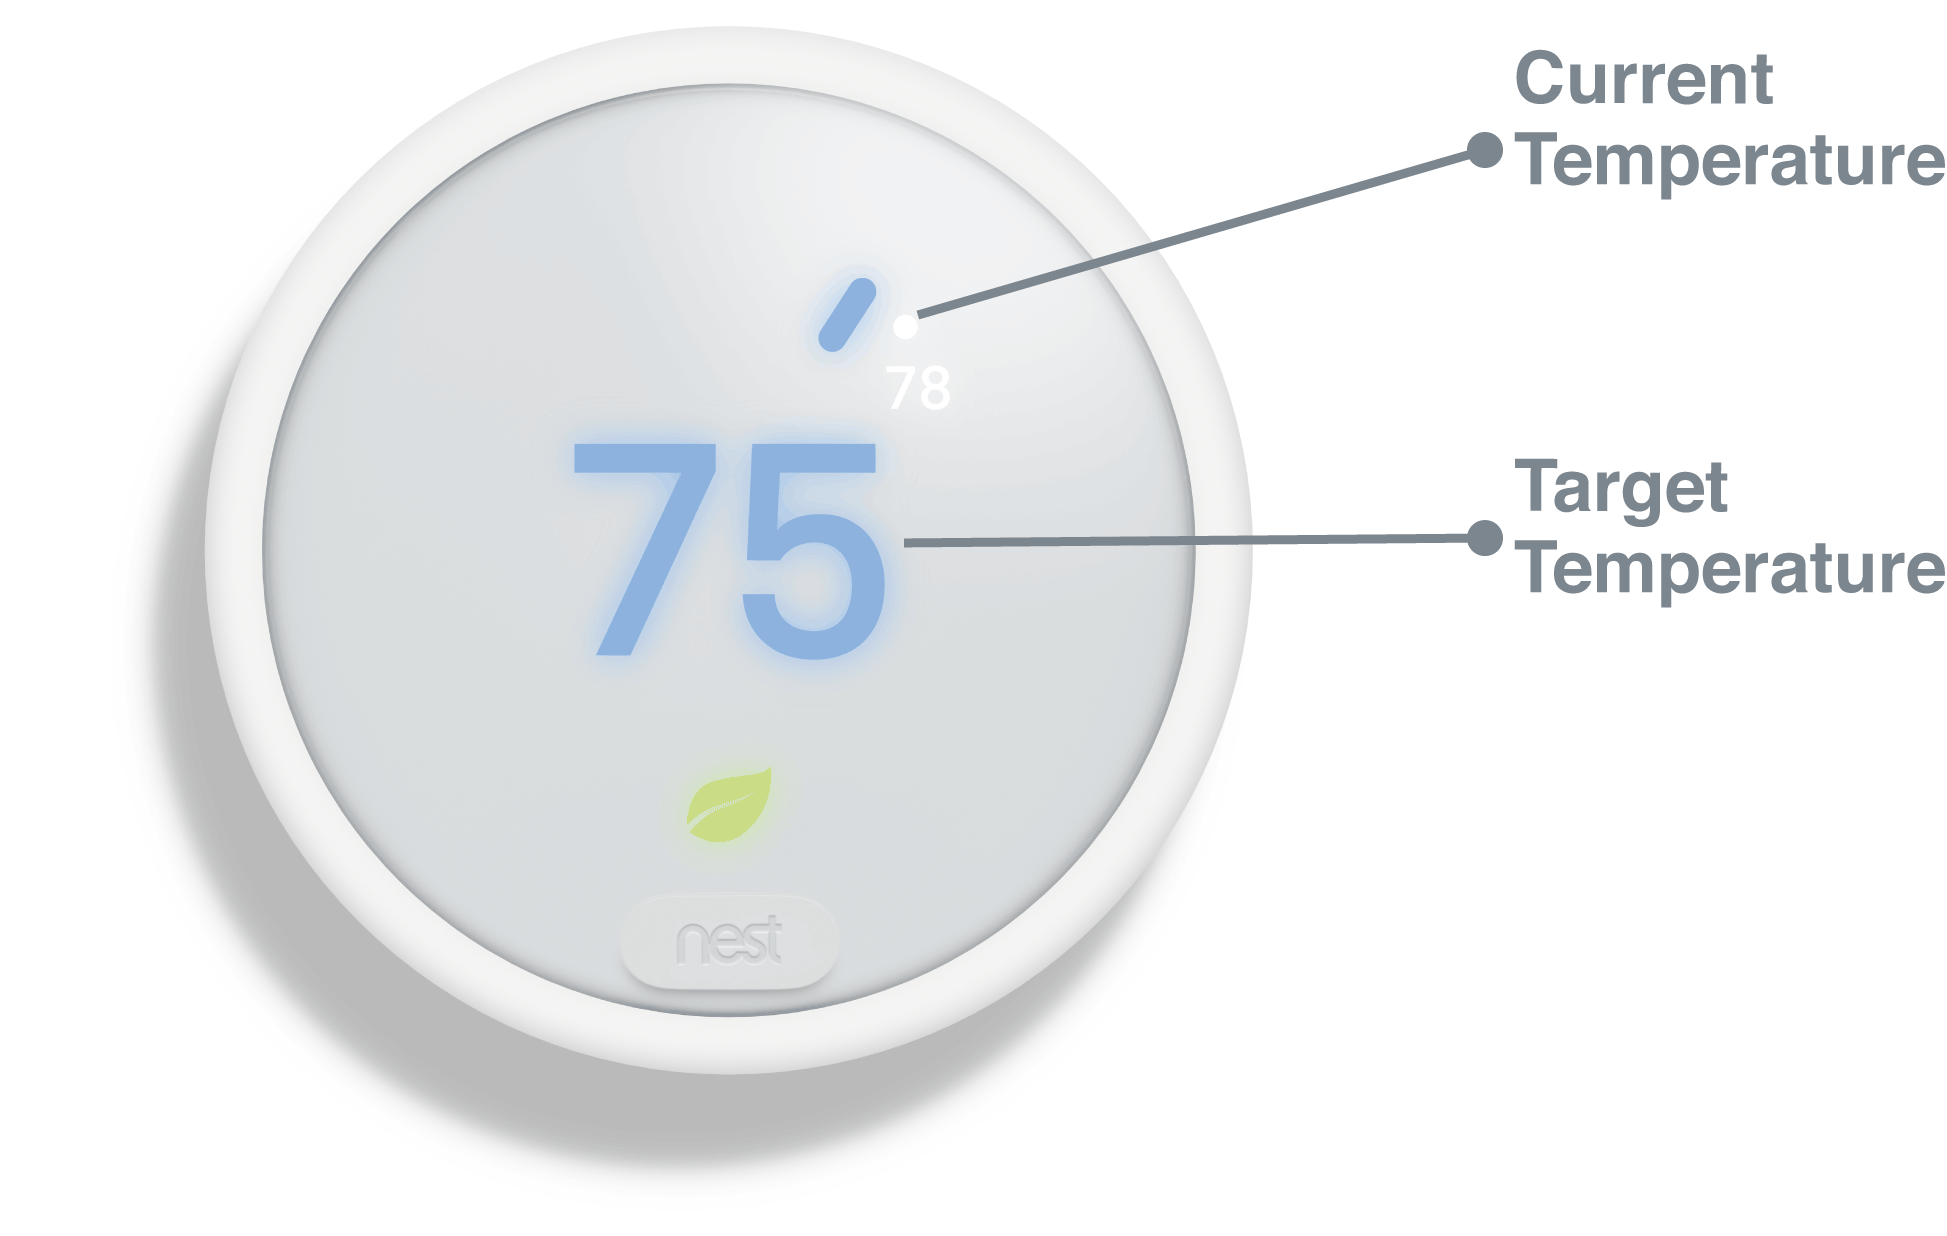 Nest Thermostat Current Room Temperature